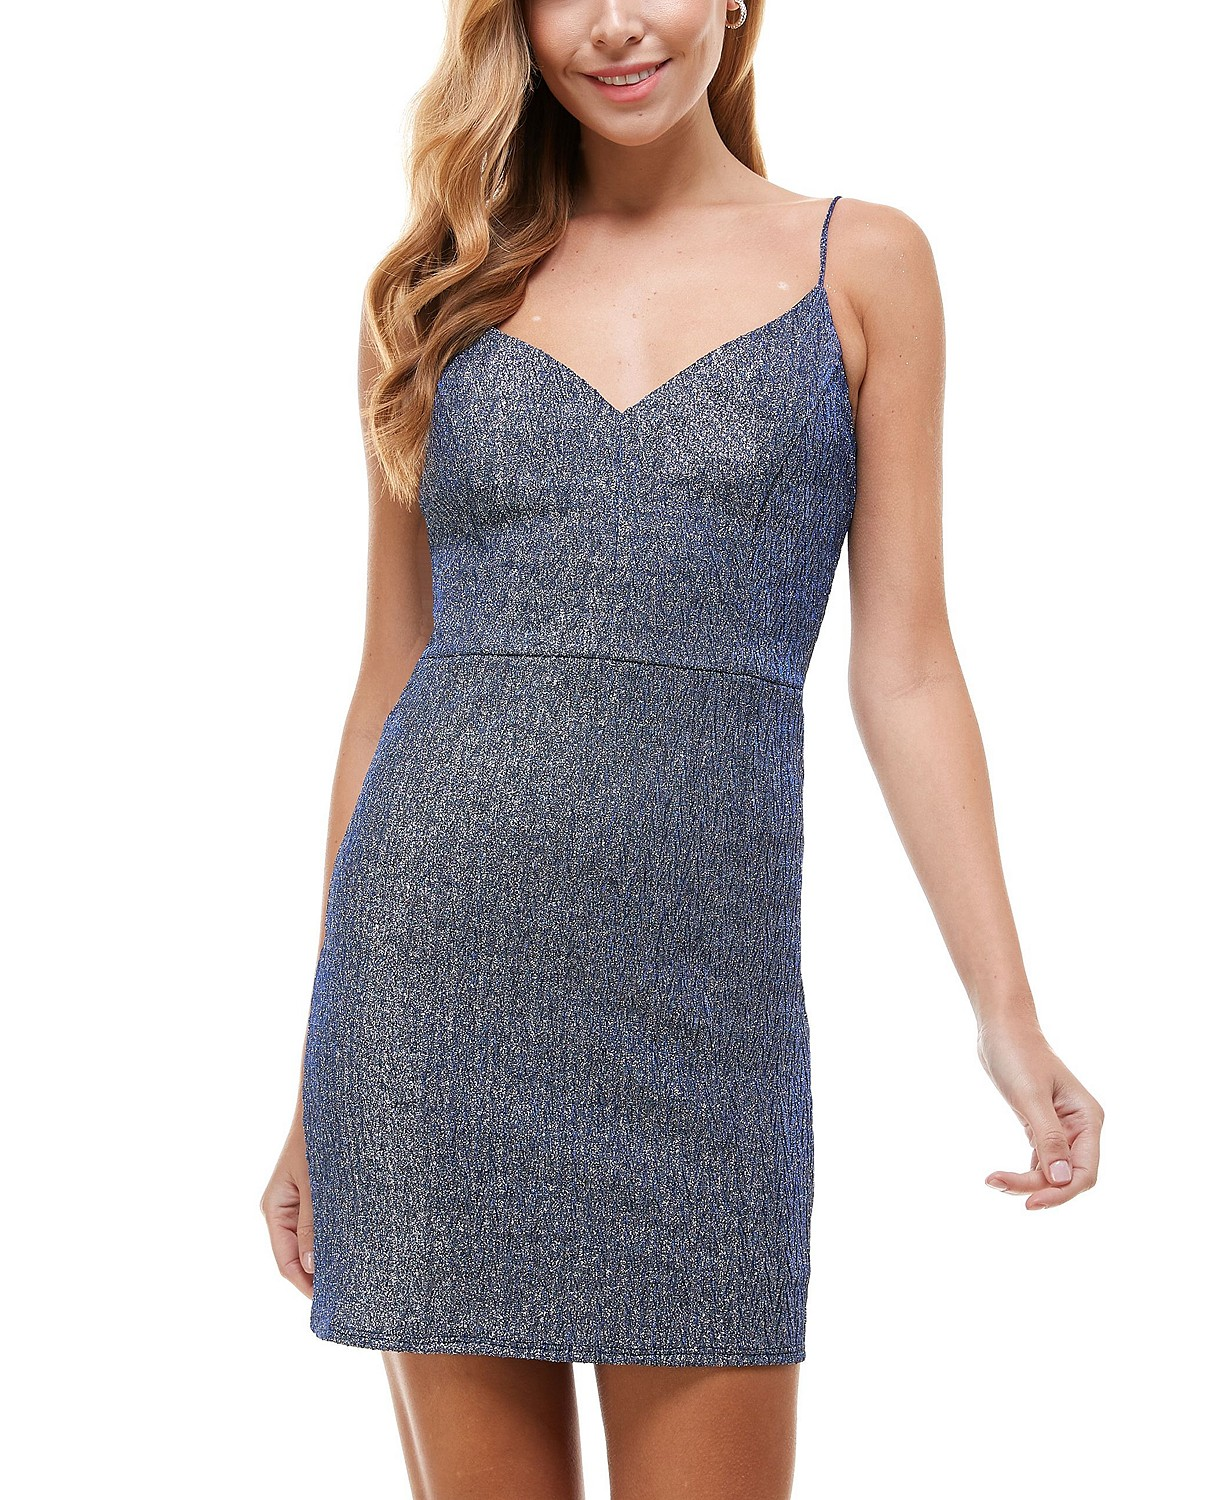 Macy's: Juniors' Plunge-Neck Glitter Bodycon Dress $10.66 (81% off)